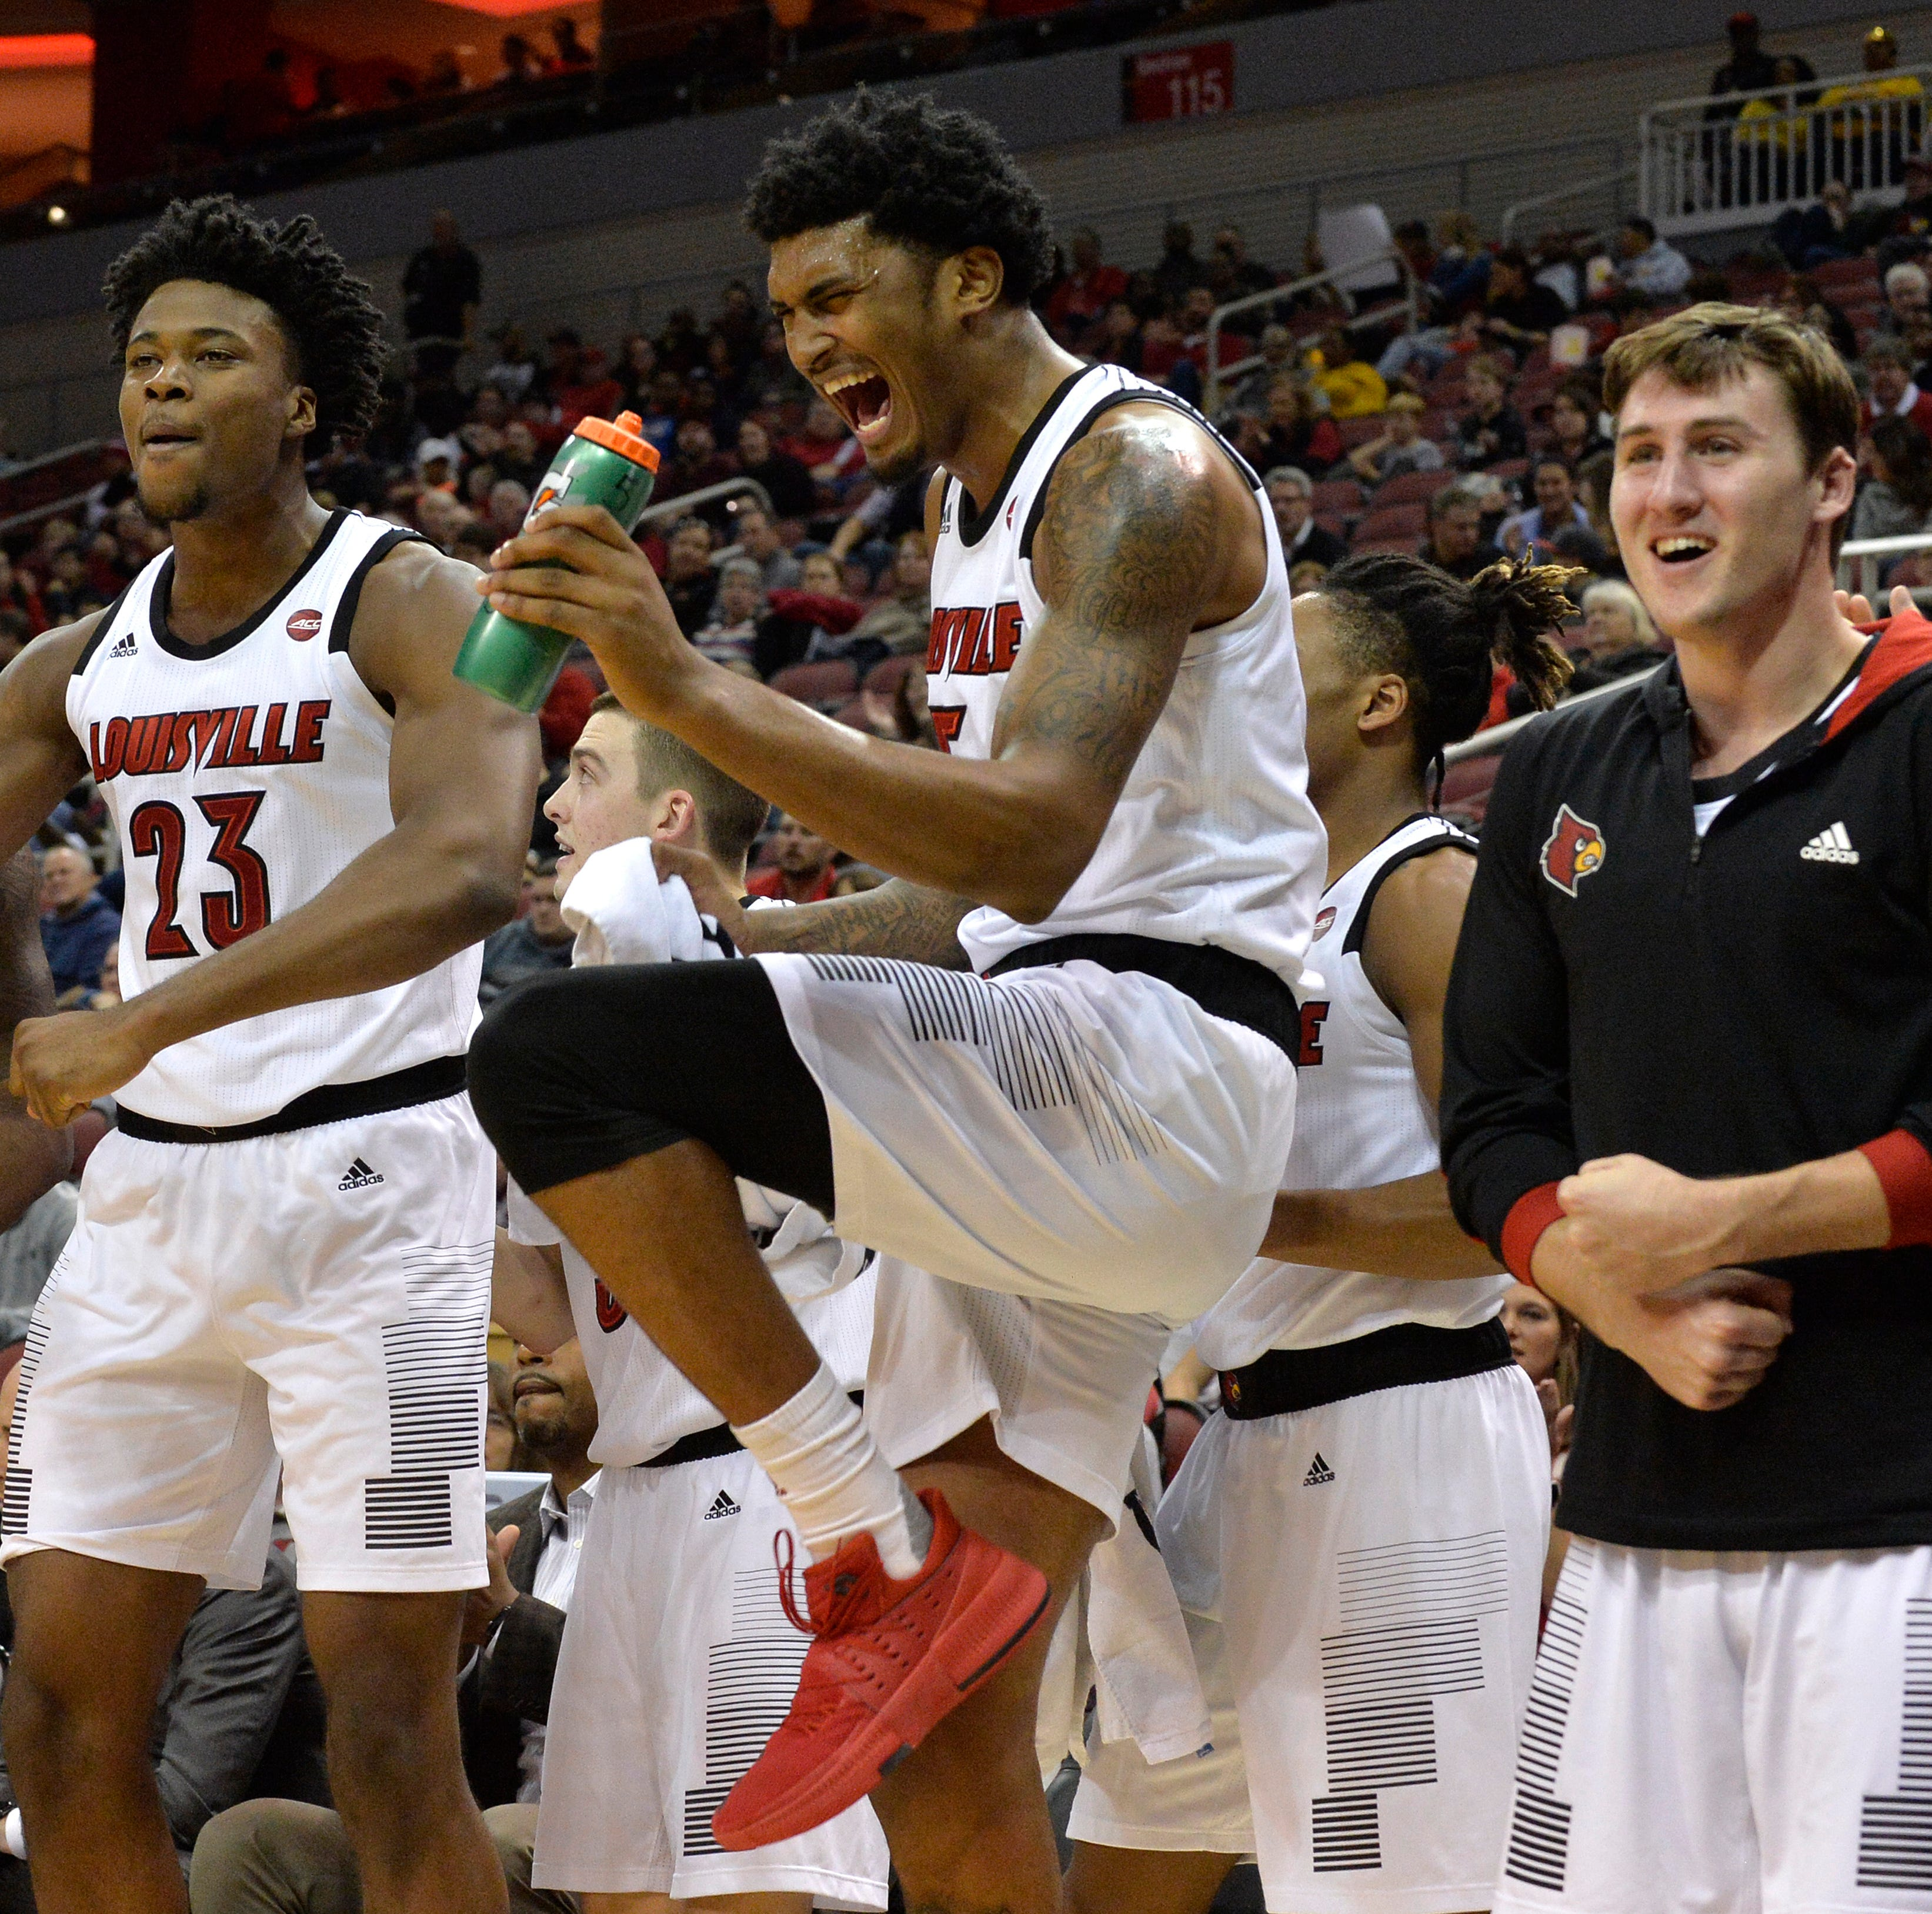 How to watch Louisville basketball's season opener vs. Nicholls State